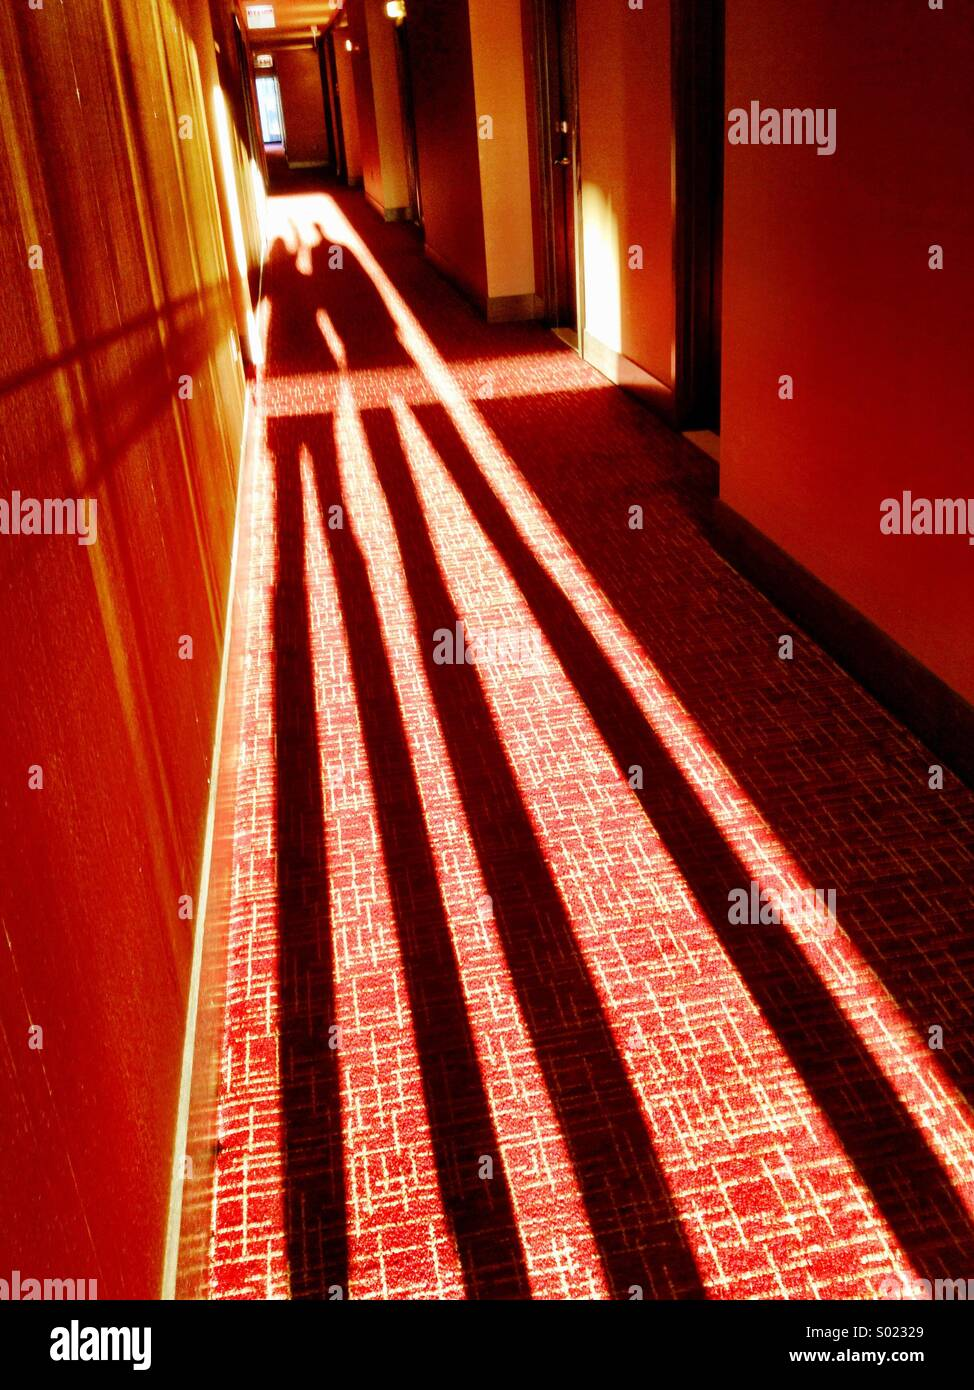 Long shadows in hallway - Stock Image